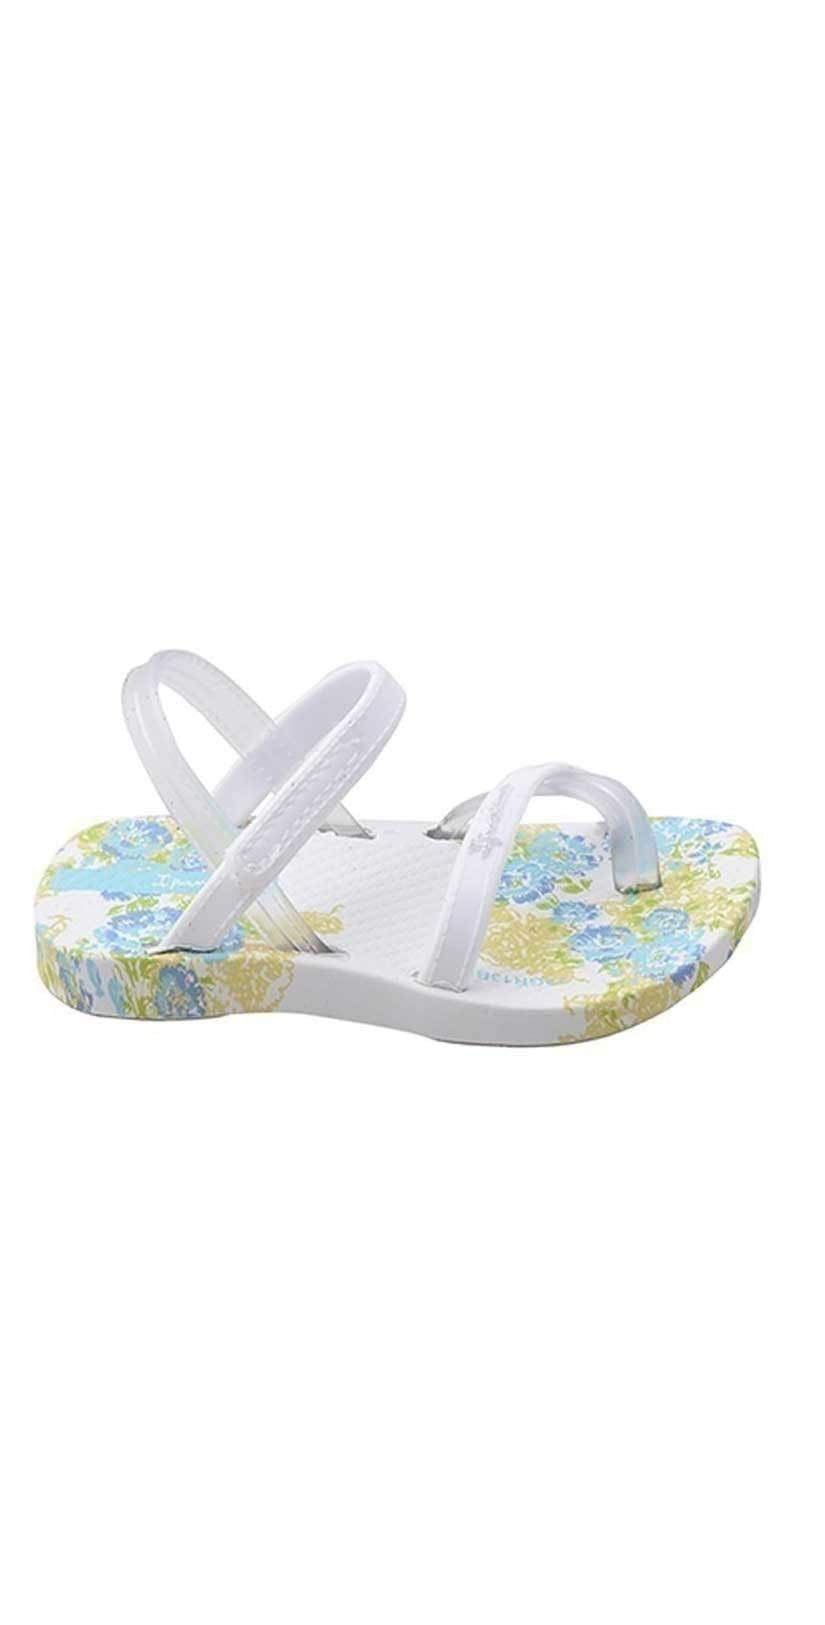 Ipanema Baby Blanket White Sandals side view